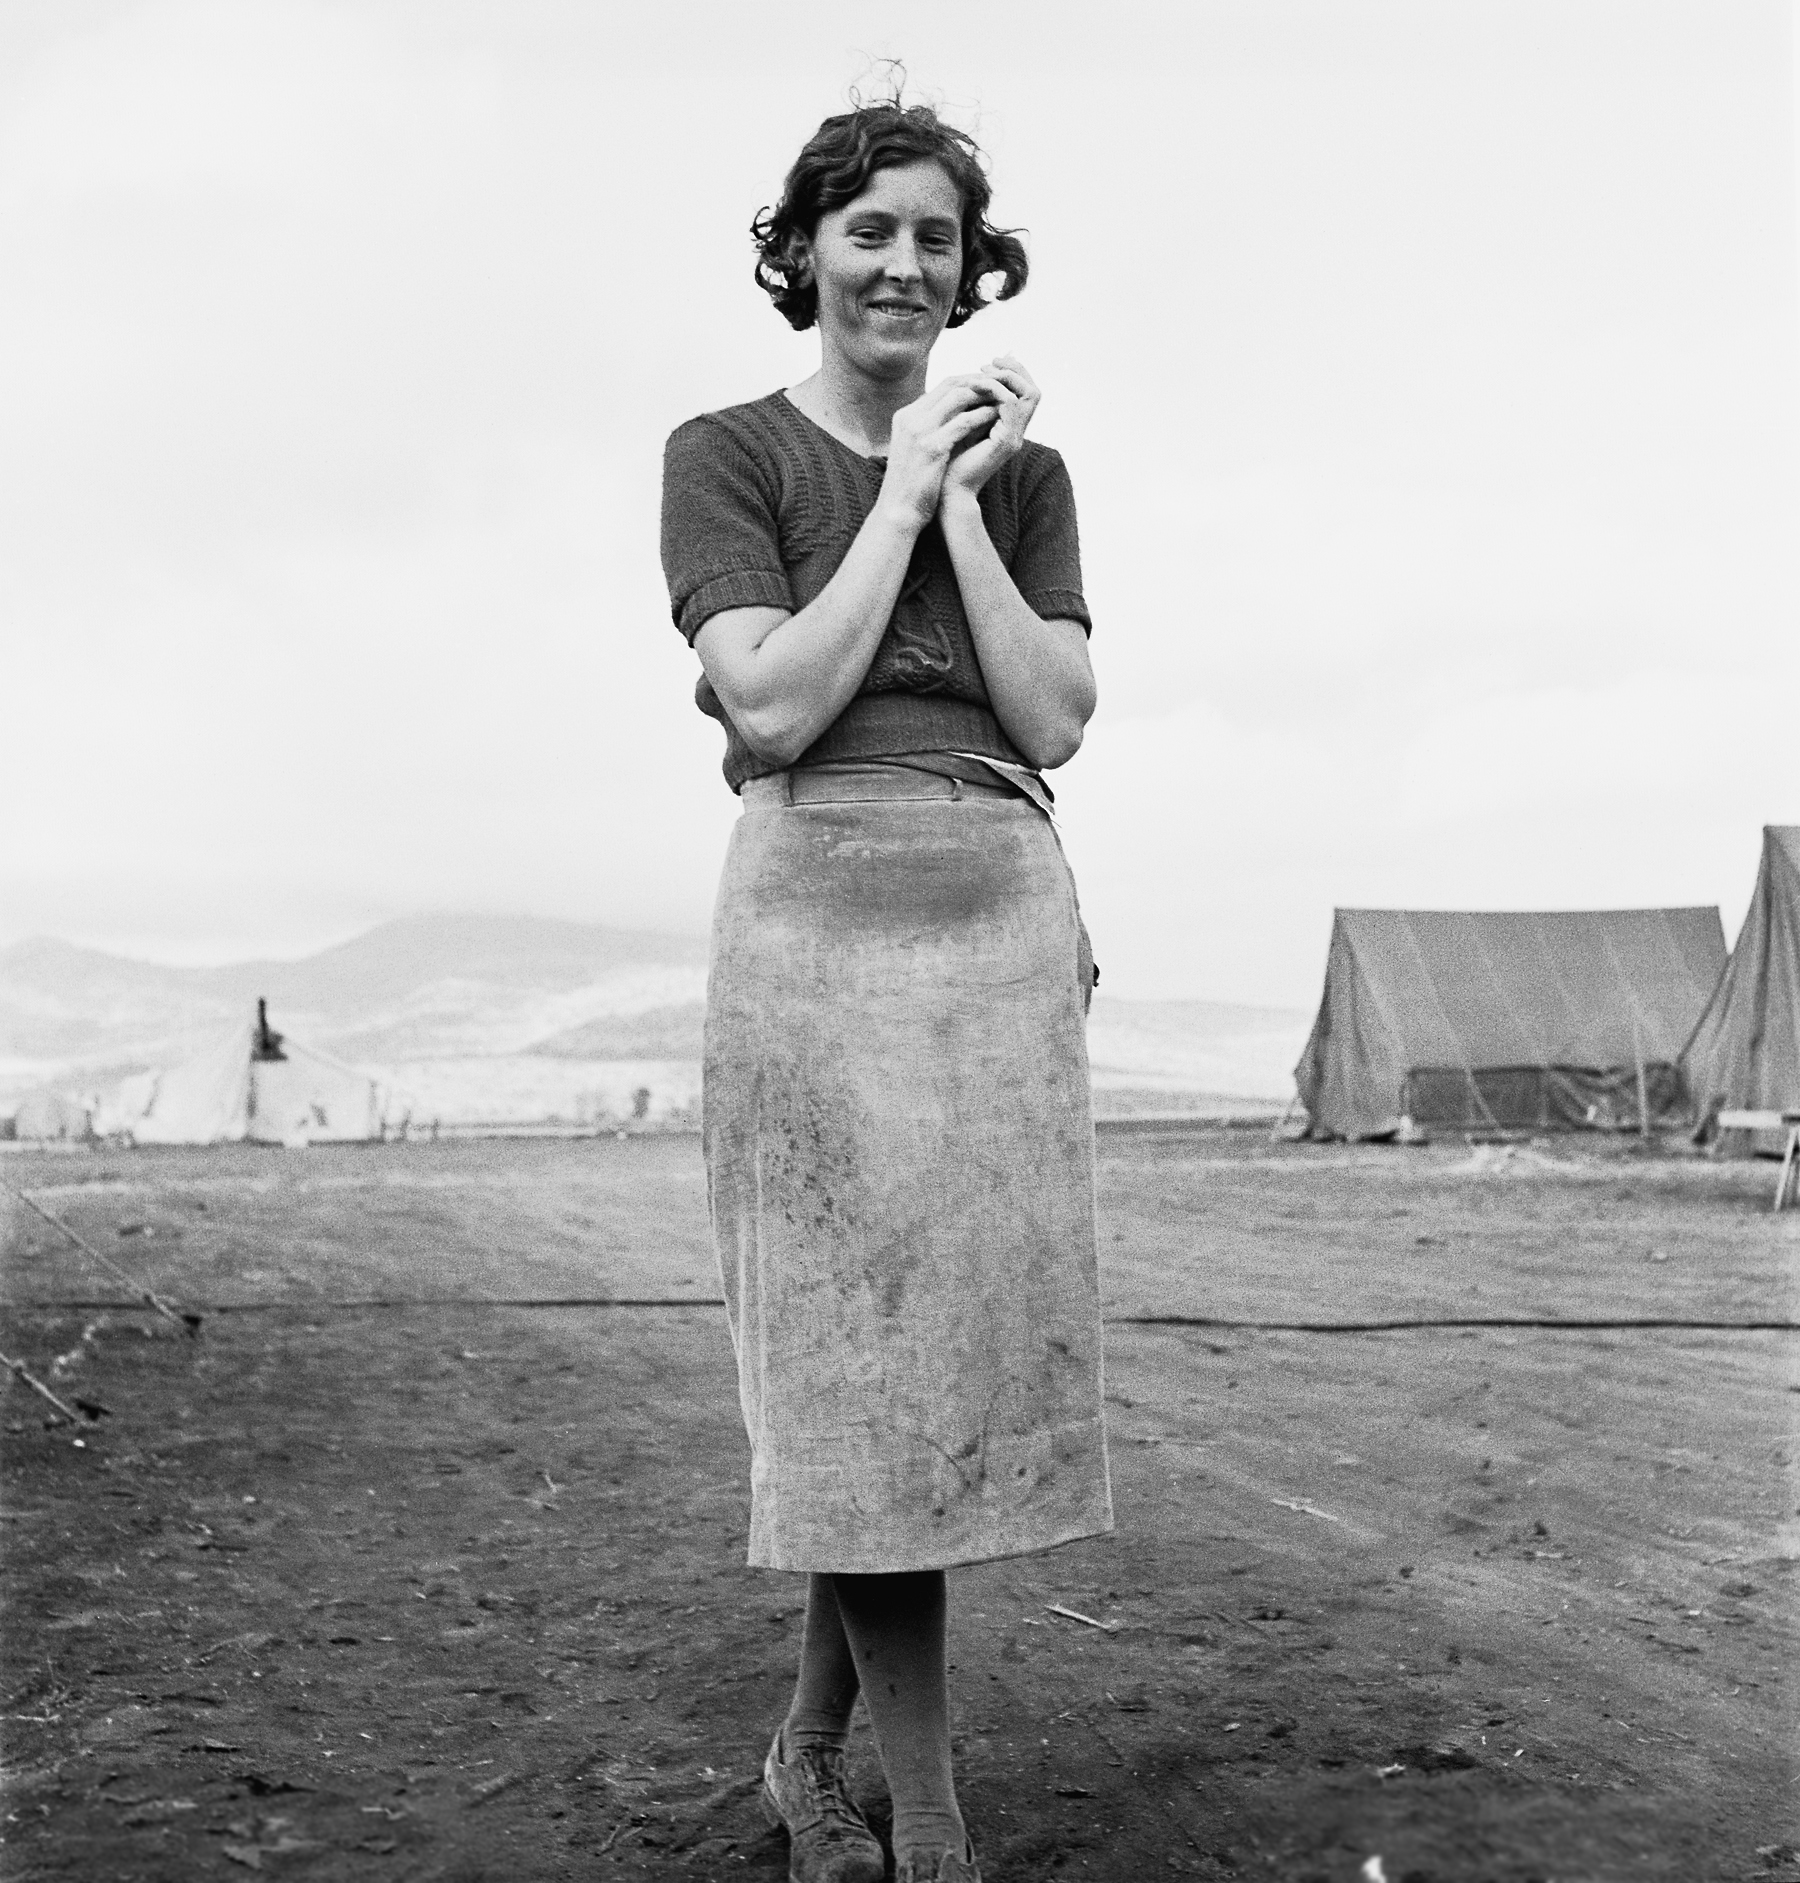 dorothea lange research paper Dorothea lange, photographer essay, research paper dorothea lange dorothea lange was born in 1895 in hoboken, new jersey her household had come from germany to.